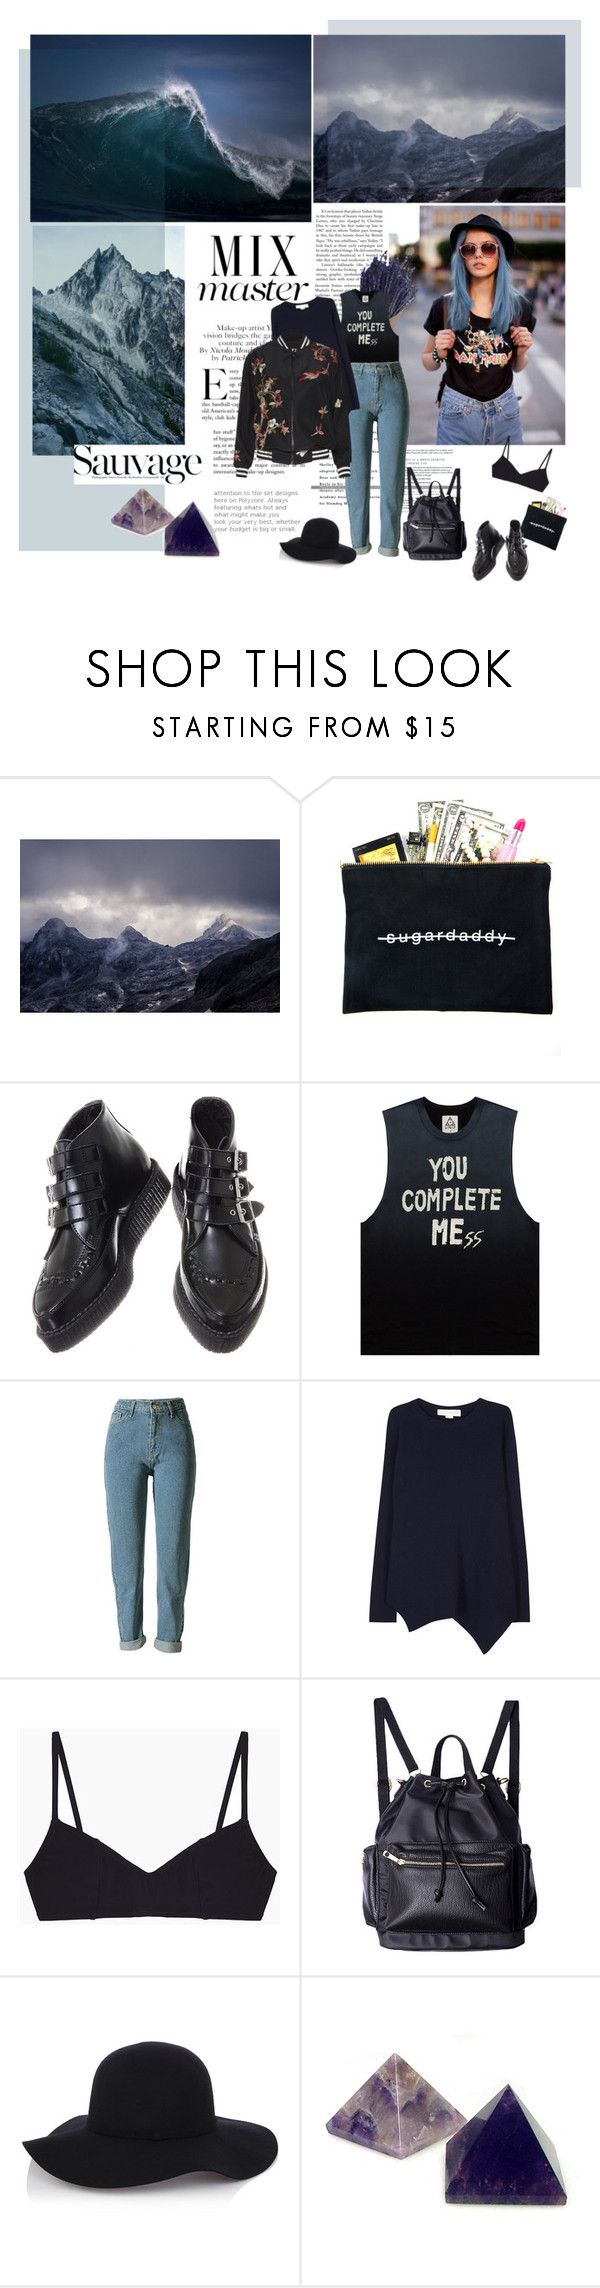 """""""Landscapes"""" by solespejismo on Polyvore featuring Libertine, Dimepiece, STELLA McCARTNEY, Araks, Warehouse, Anja and Alice + Olivia"""